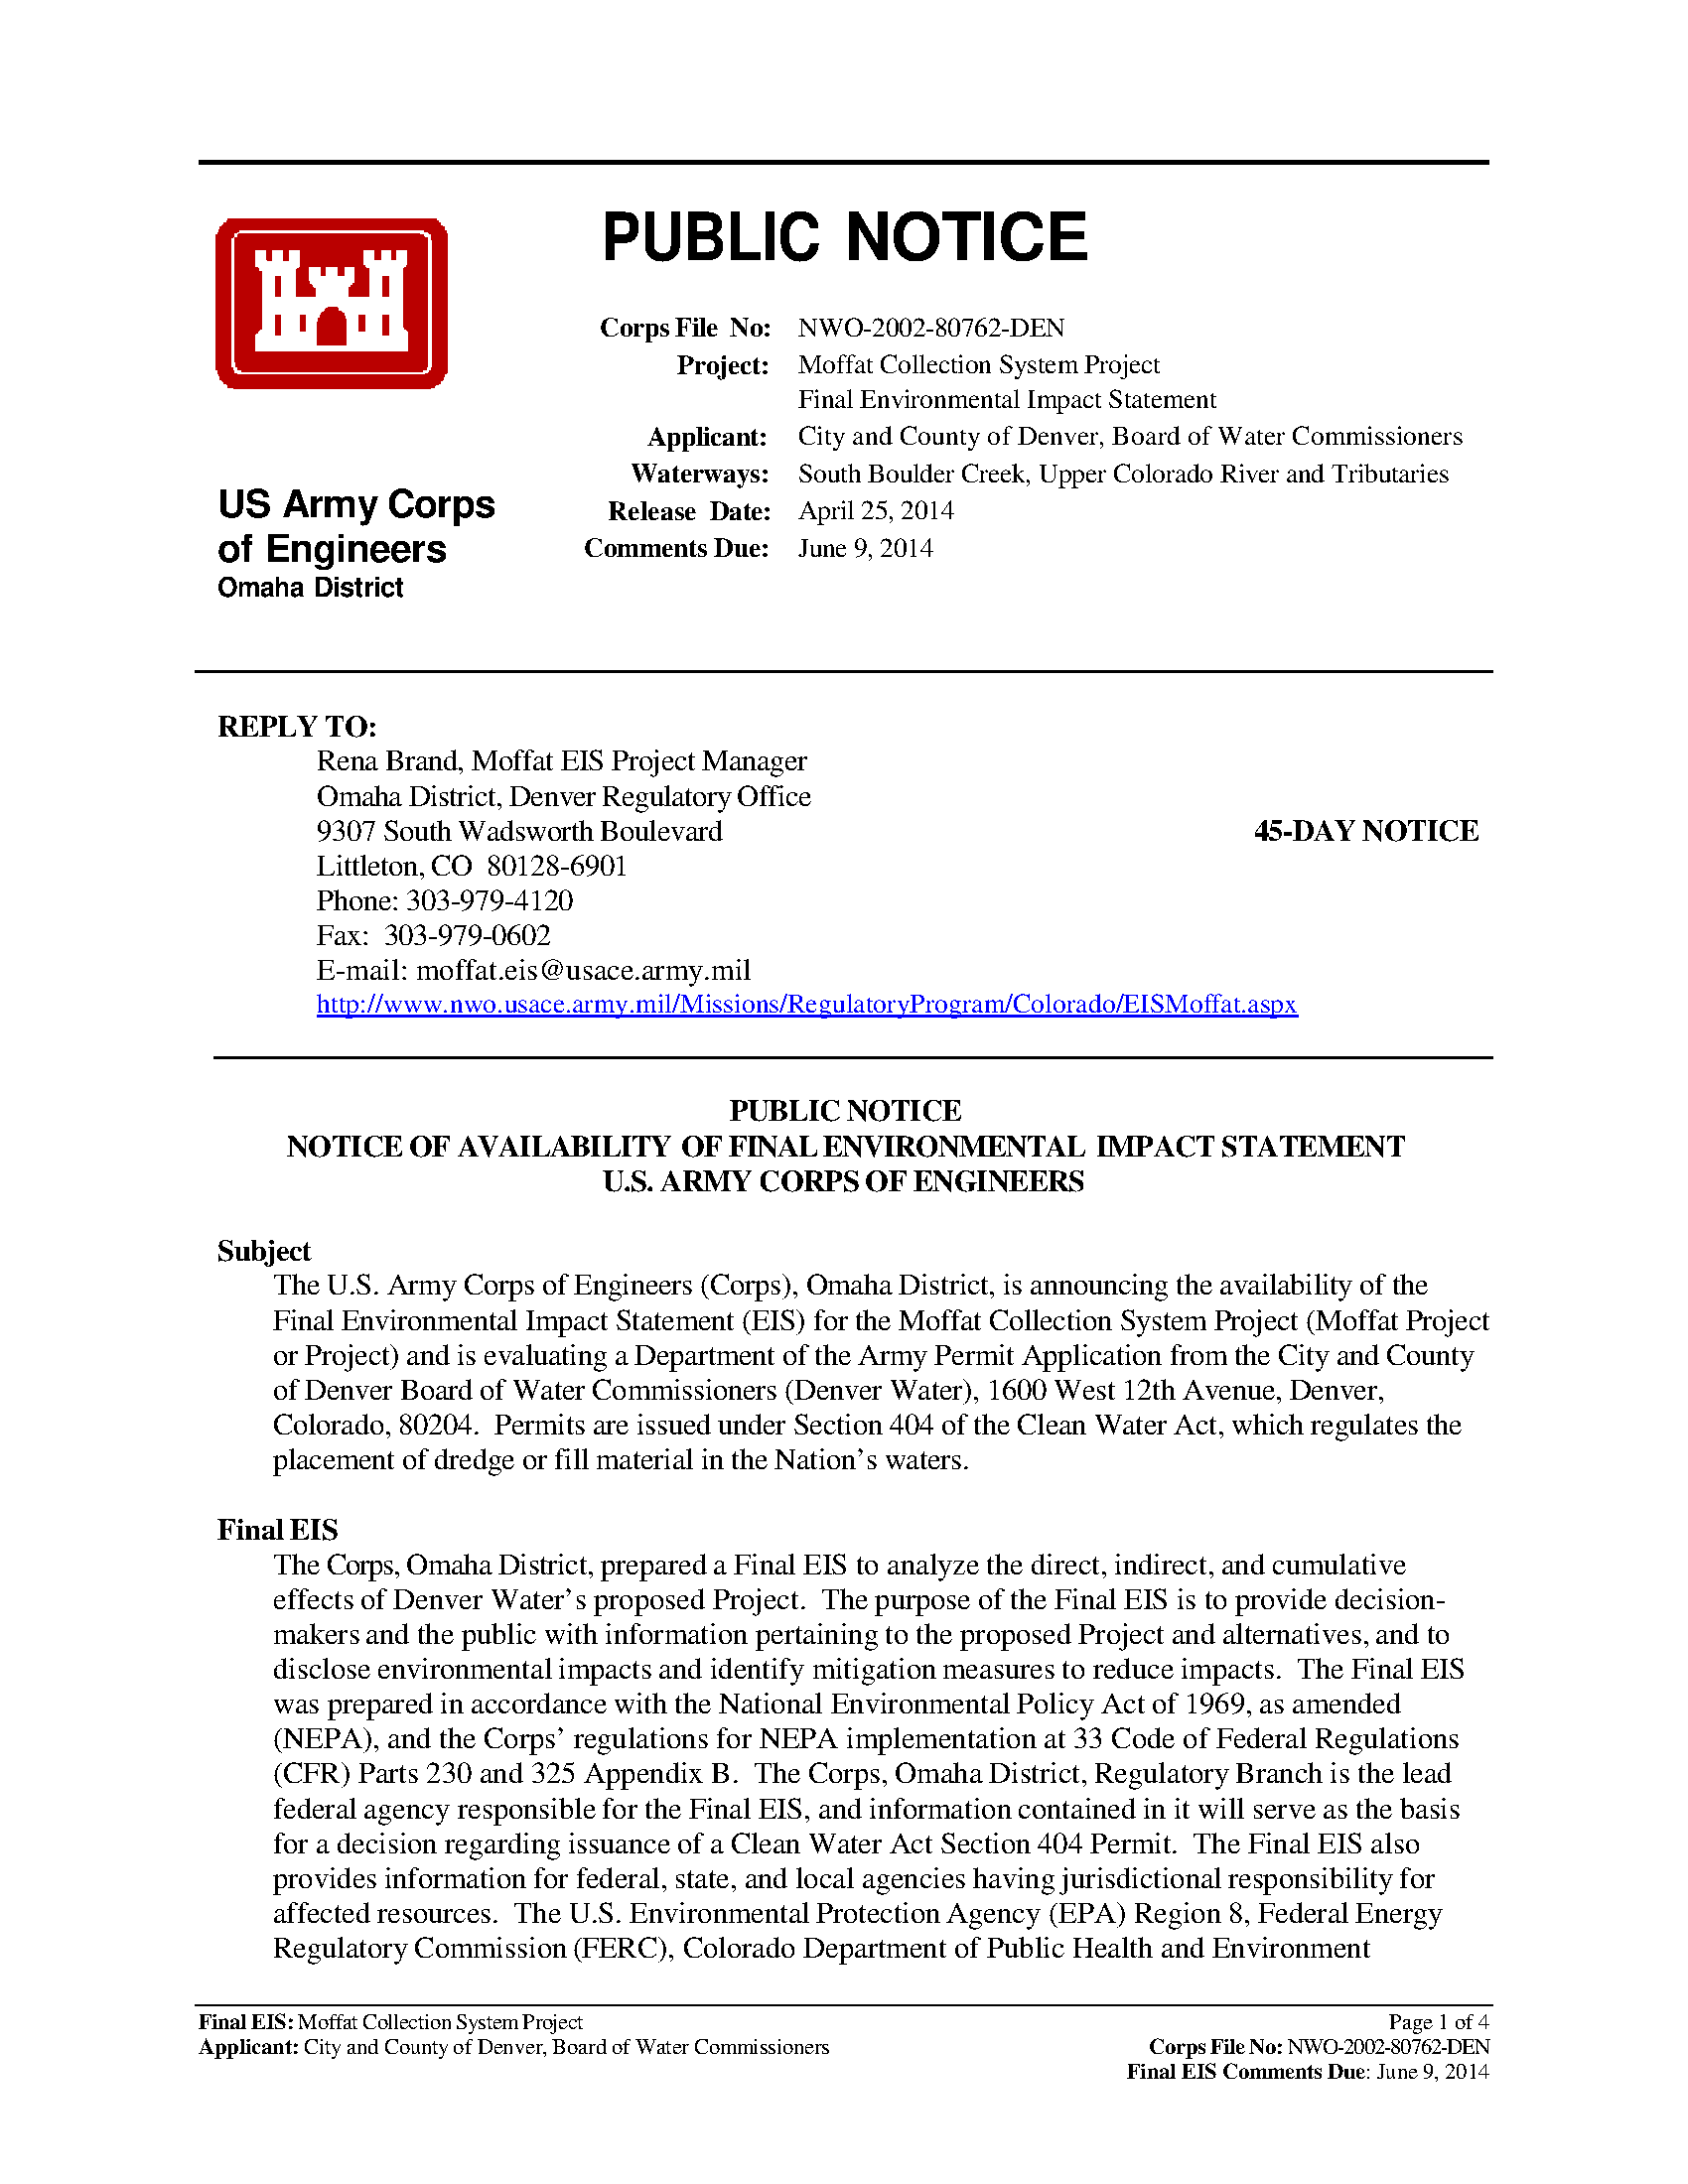 Public Notice Project Management Reports Usace Digital Library